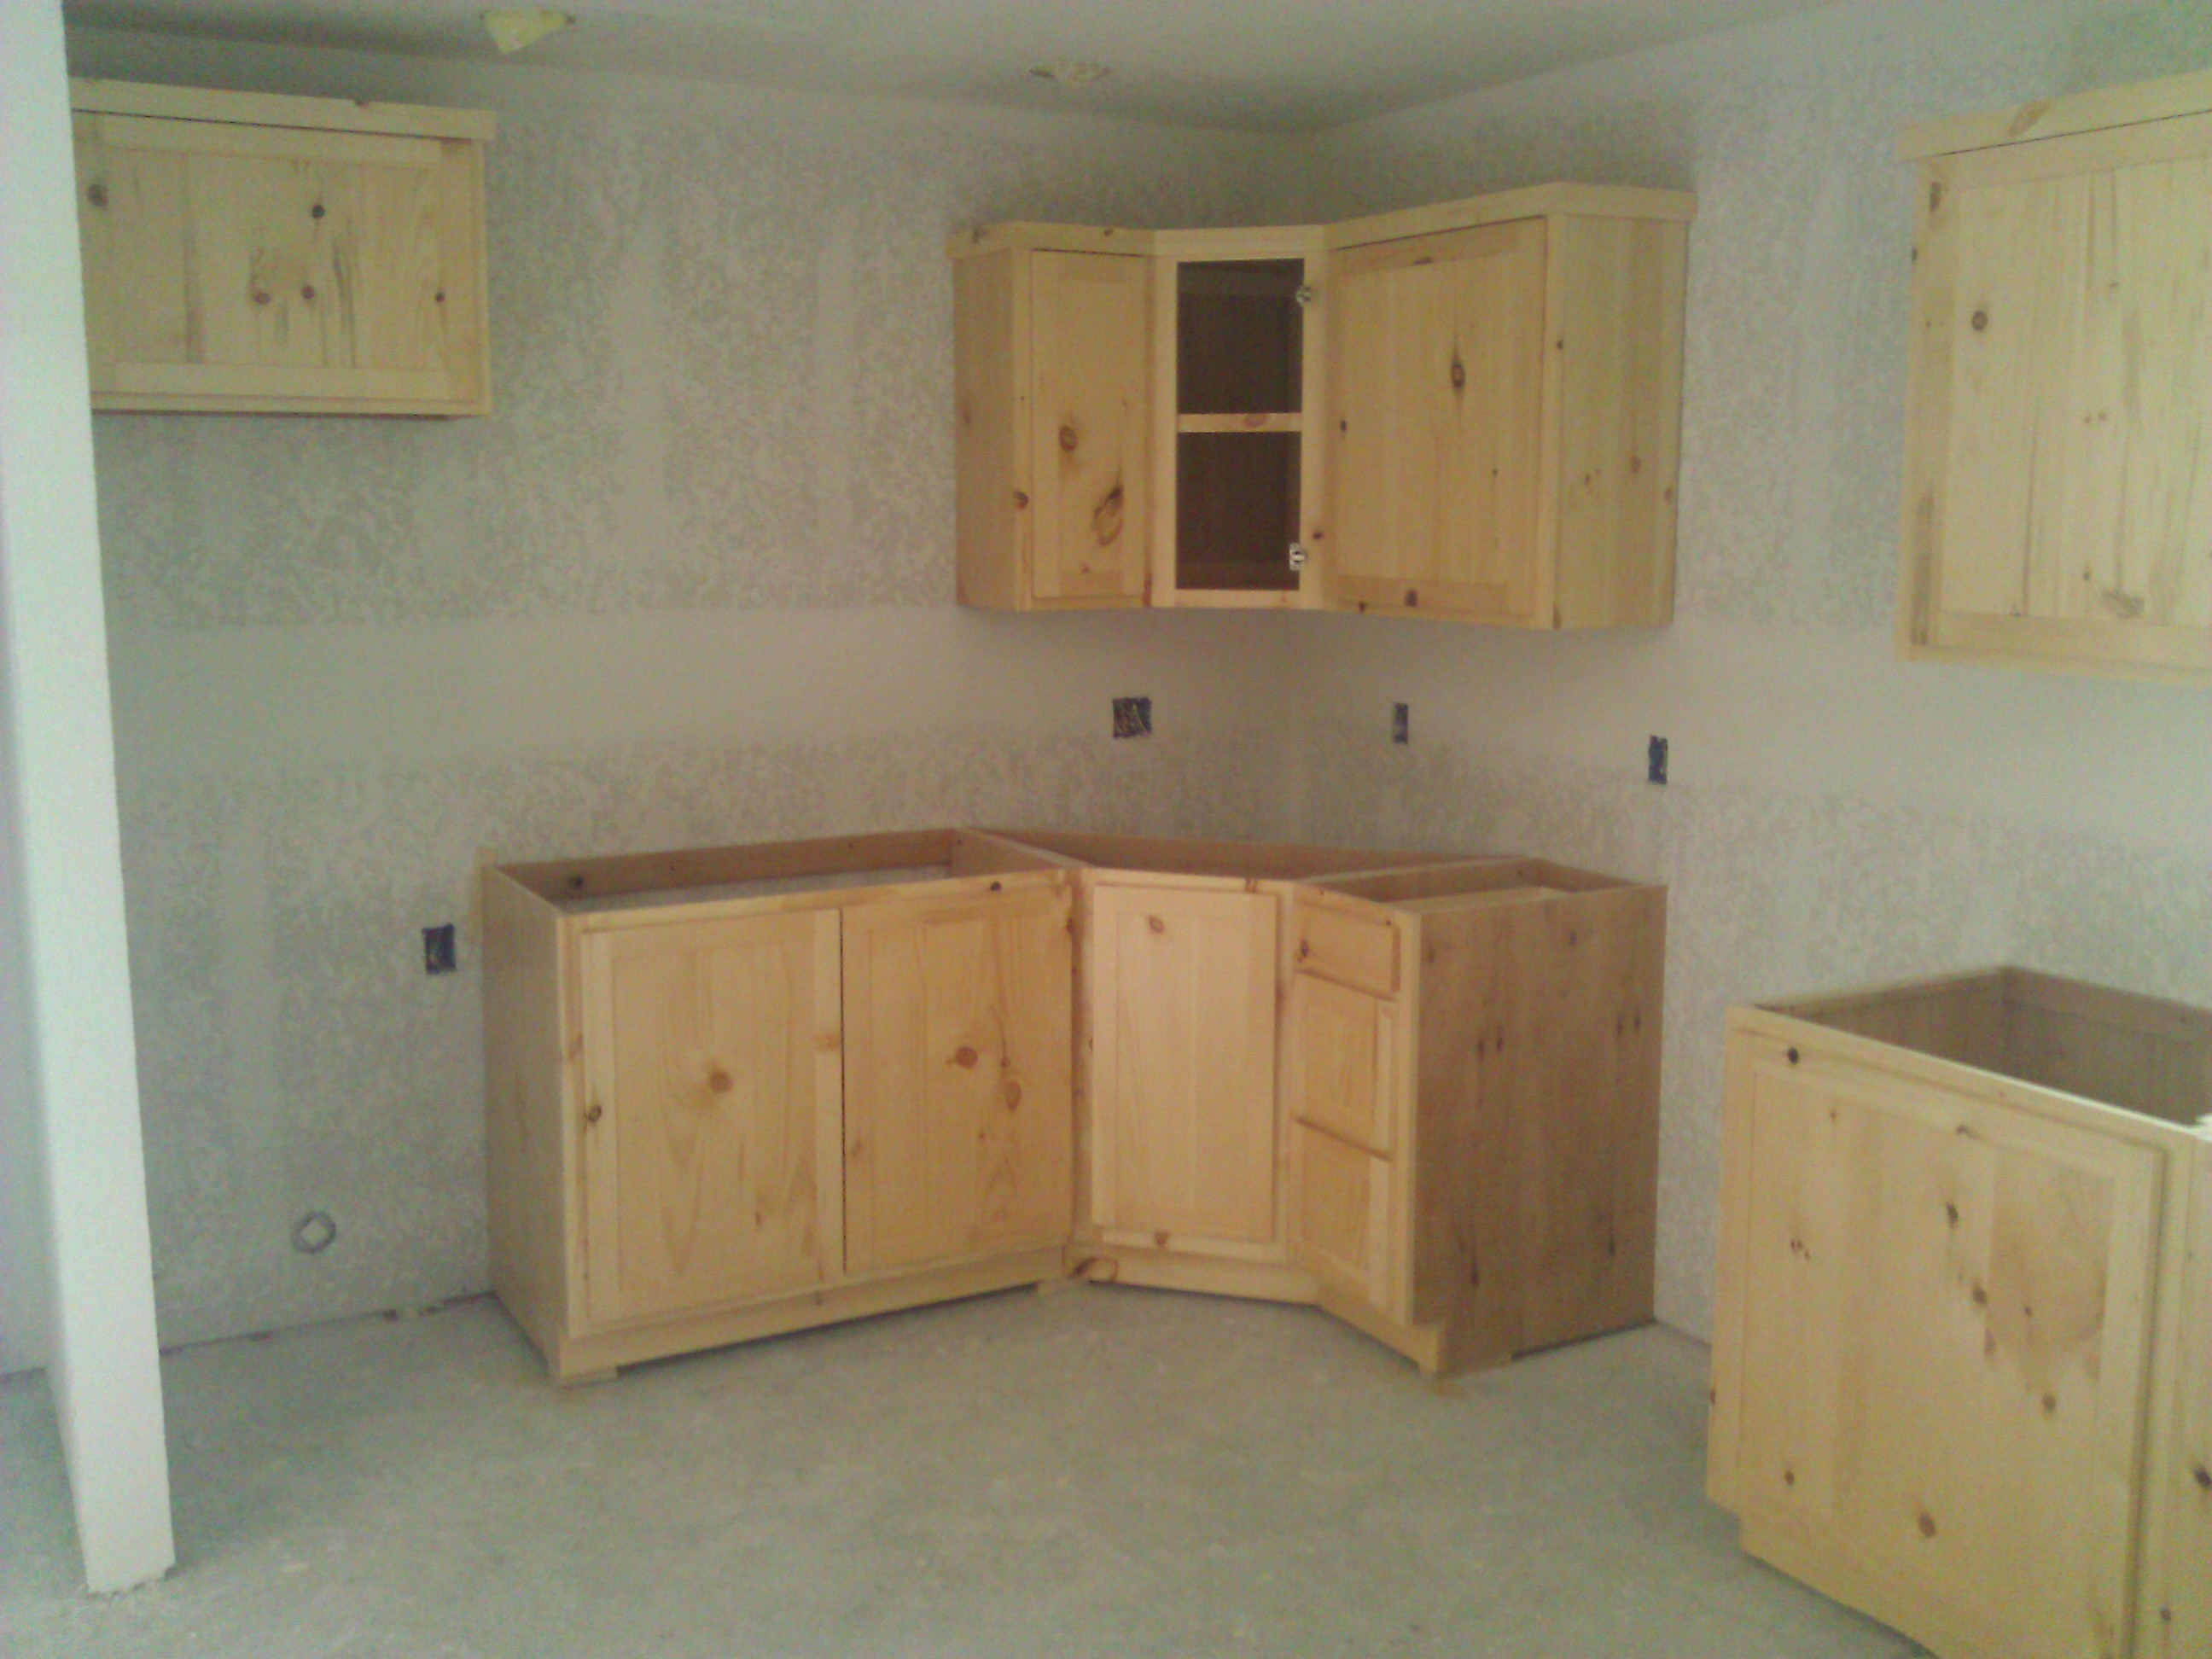 Knotty Pine Kitchen Cabinets By Tommy K At